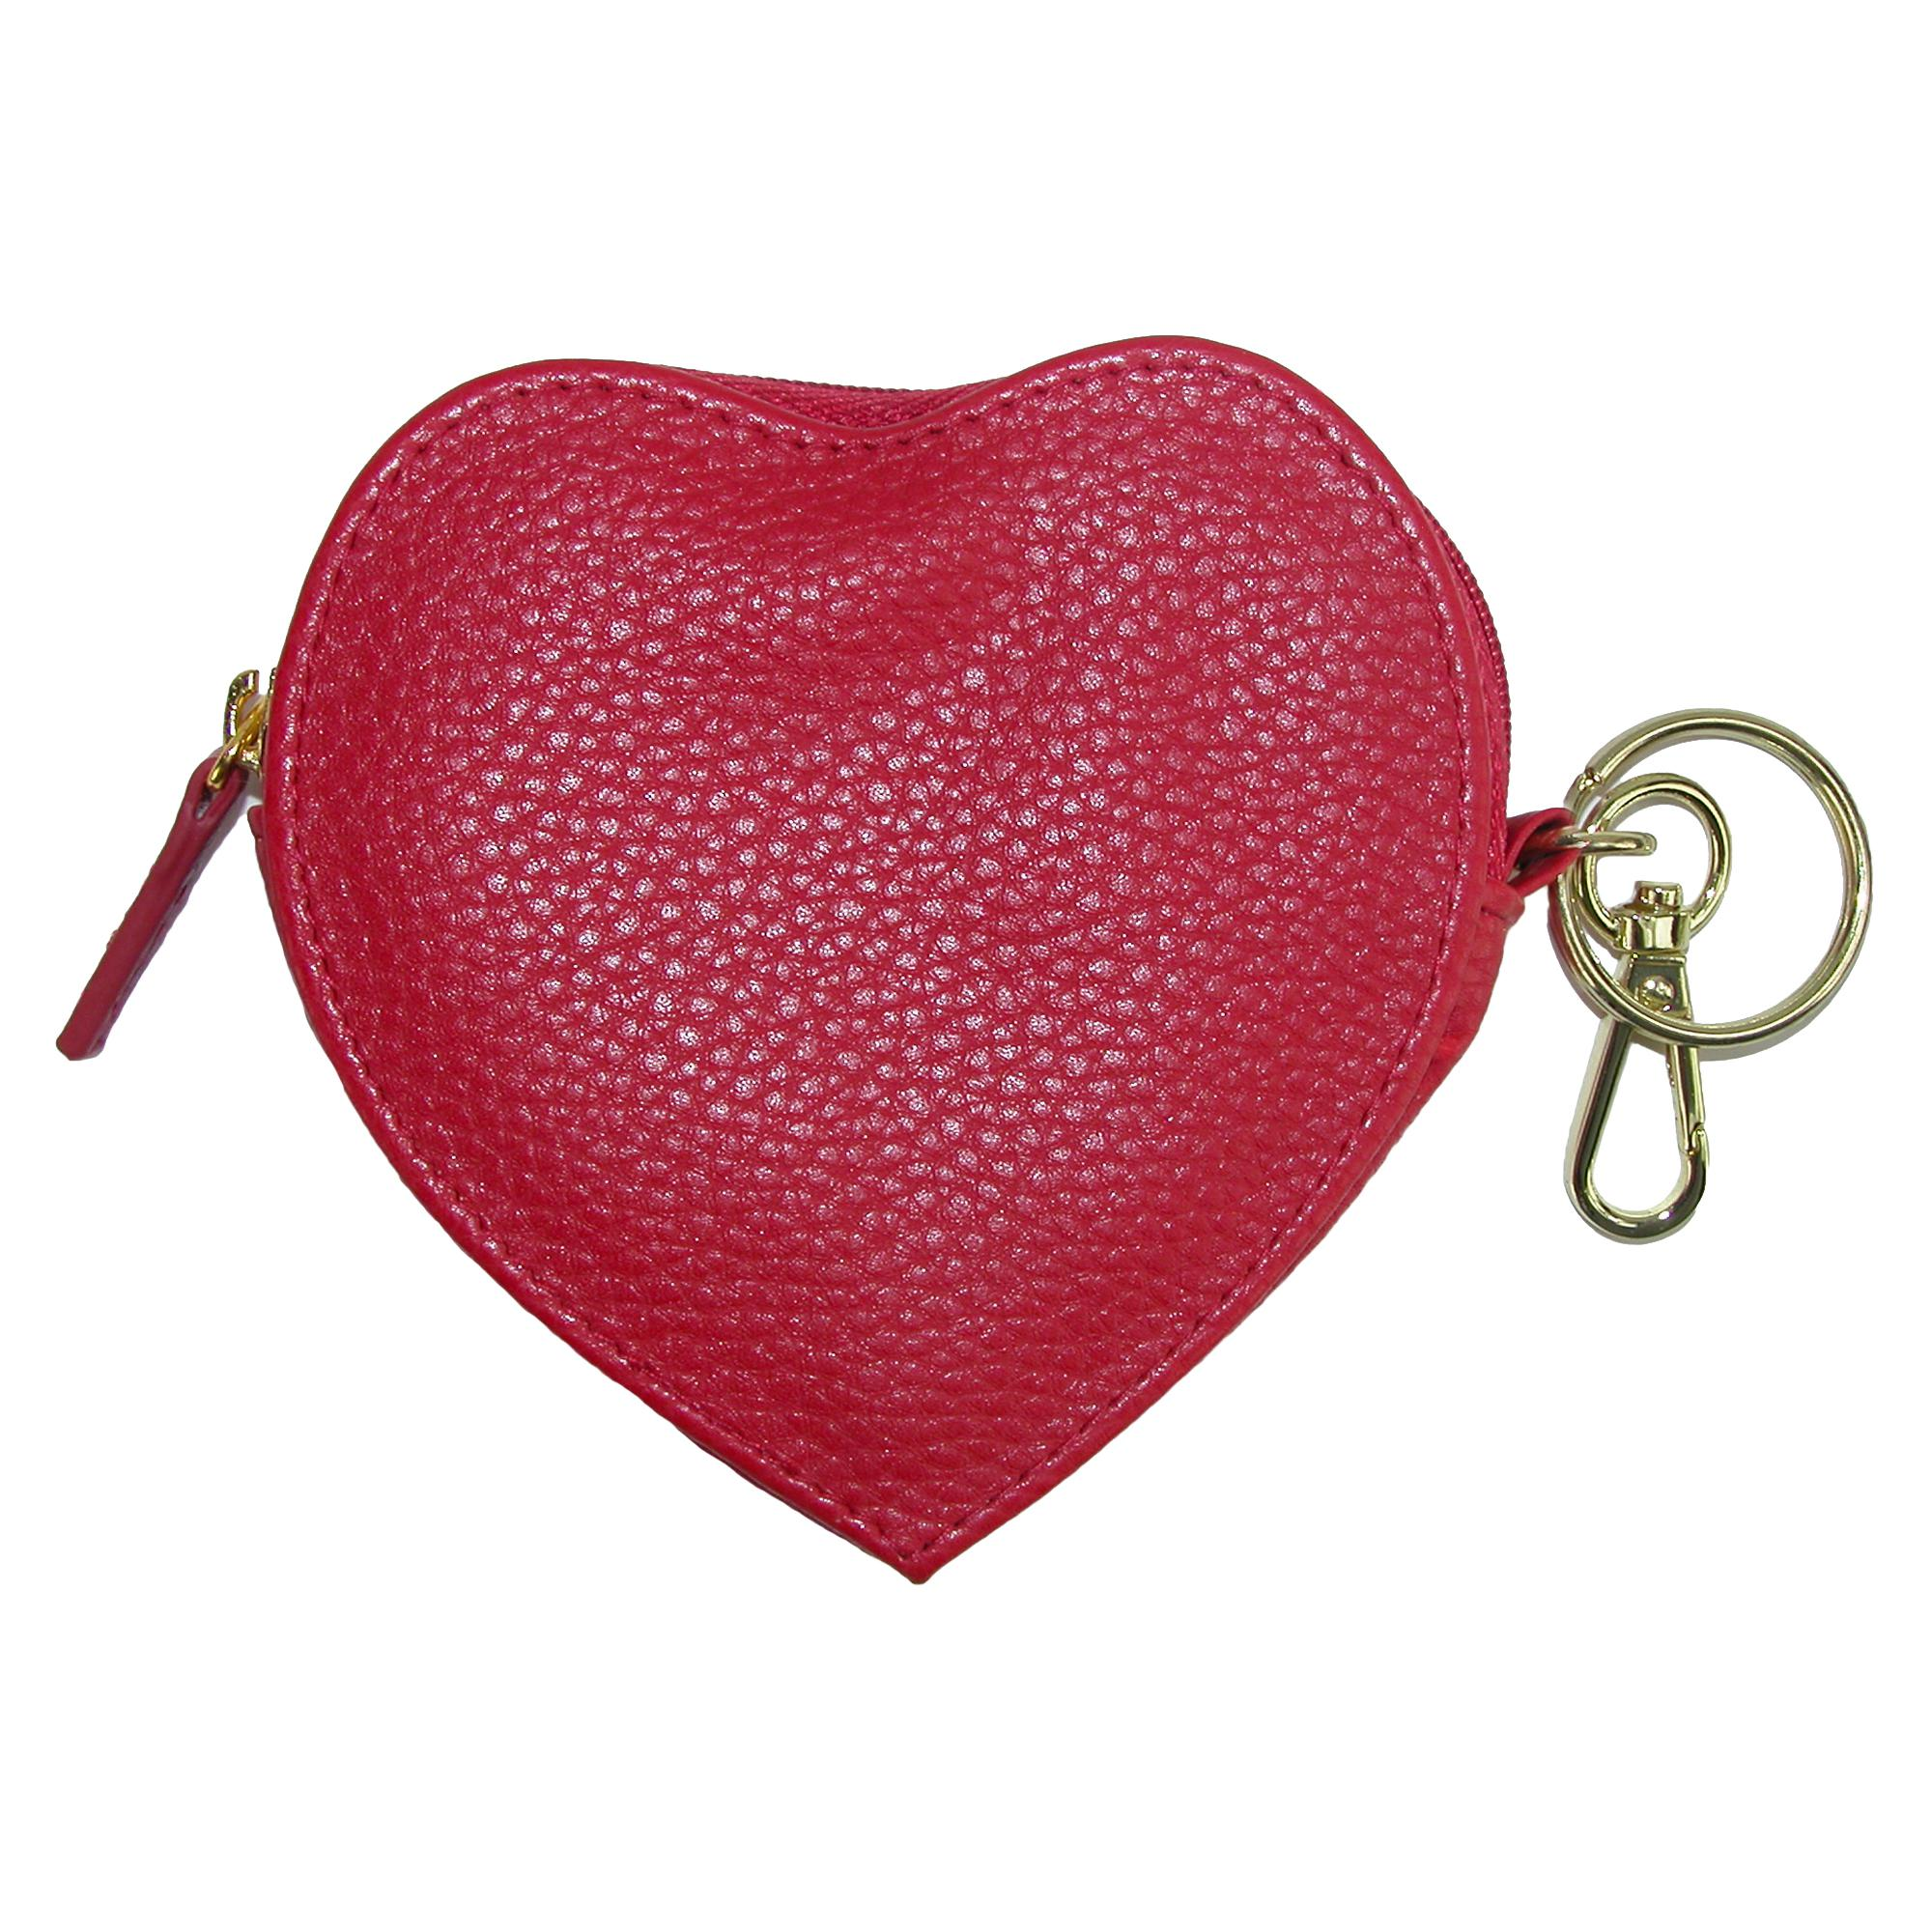 Buxton Heart Shaped Coin Purse Wallet (BX-415W15-RED BX-415W15) photo